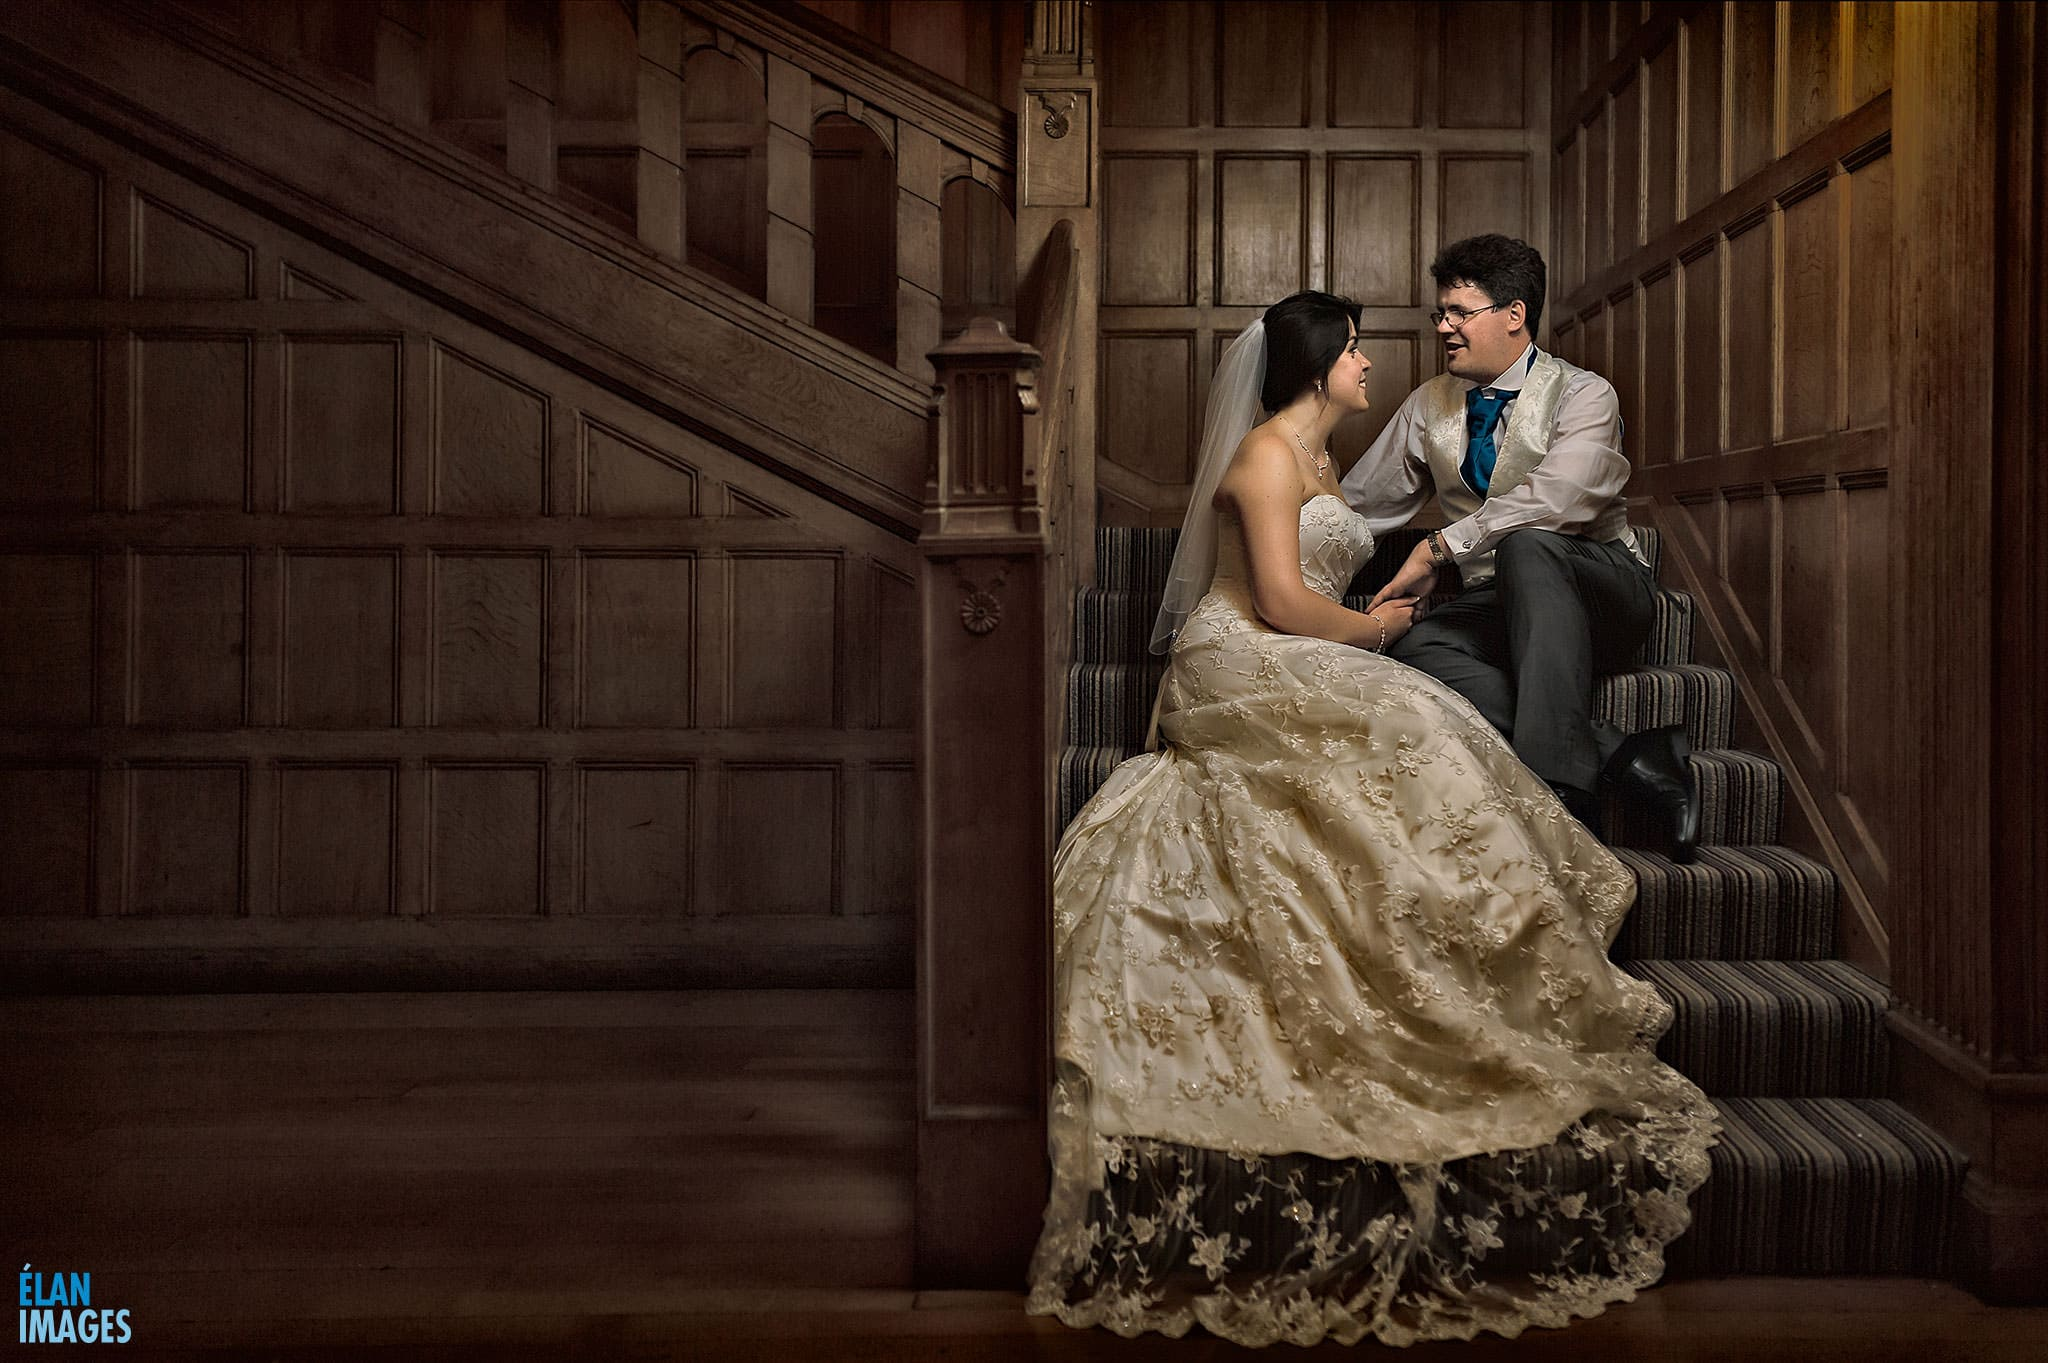 Bride and groom sitting on the stairs at their wedding in Coombe Lodge in Blagdon. Lit by off camera flash.